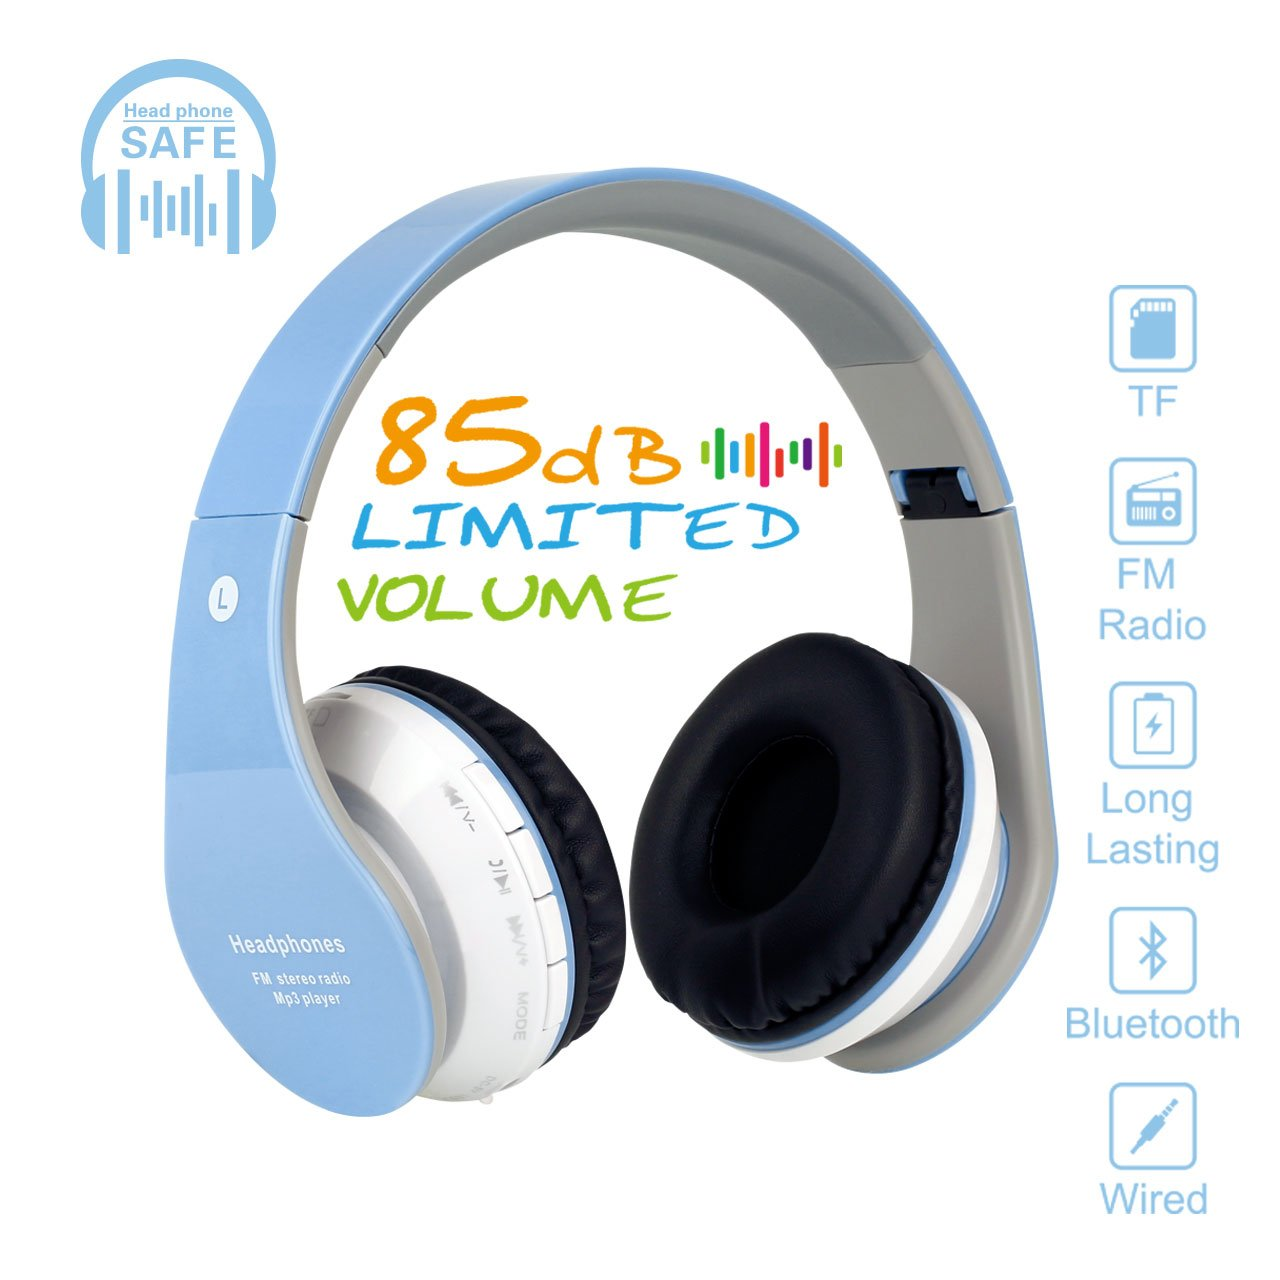 Kids Bluetooth On-Ear Headphones 85dB Volume Limiting Wireless/Wired Foldable Headset Earphones with AUX 3.5mm Jack,Mirco SD Card Slot,FM Radio for Students Children for PC Tablets Cellphone(Blue)